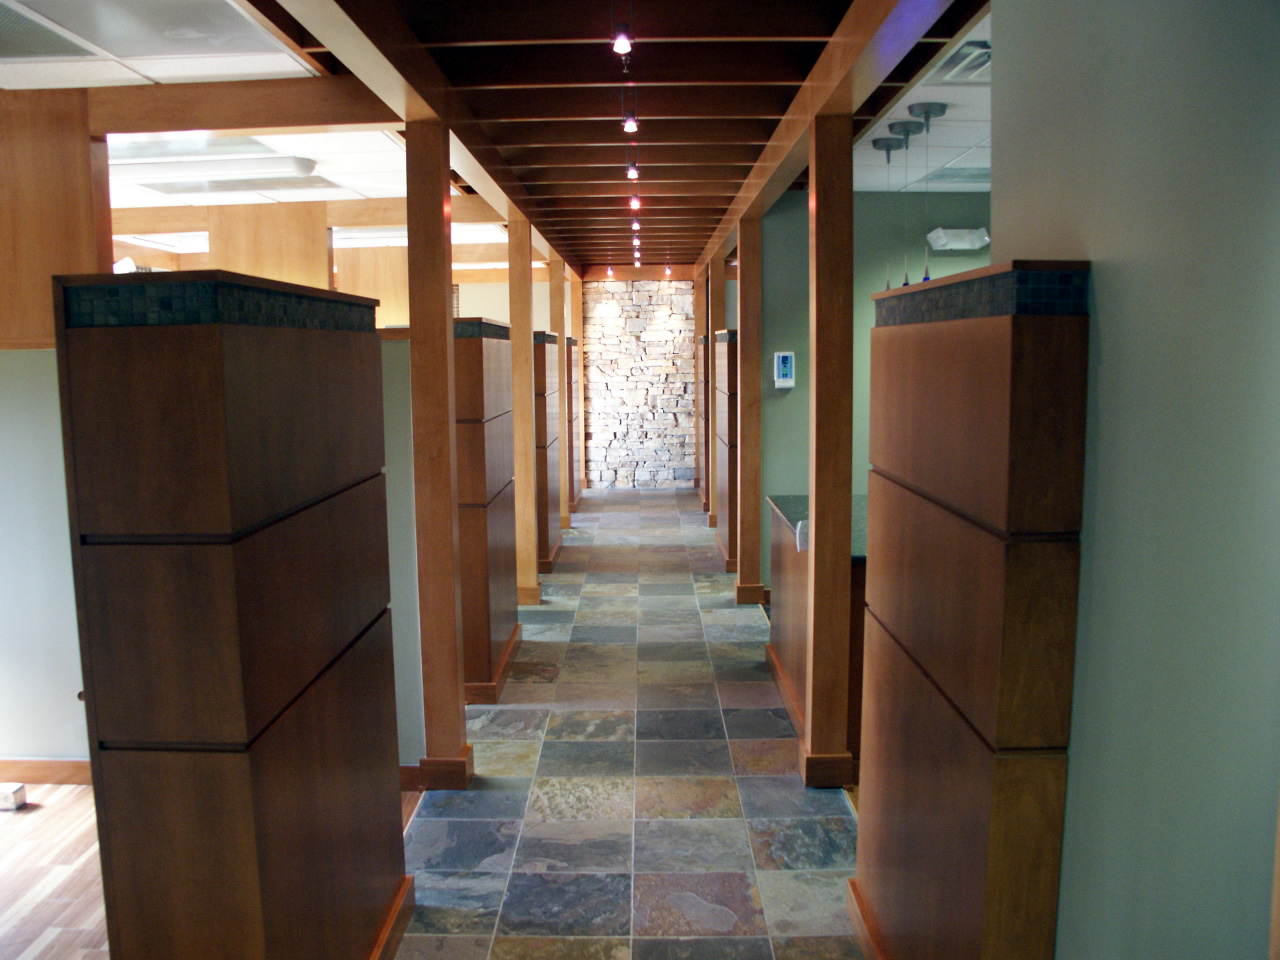 Ashbrook Center for Dentistry - Passageway